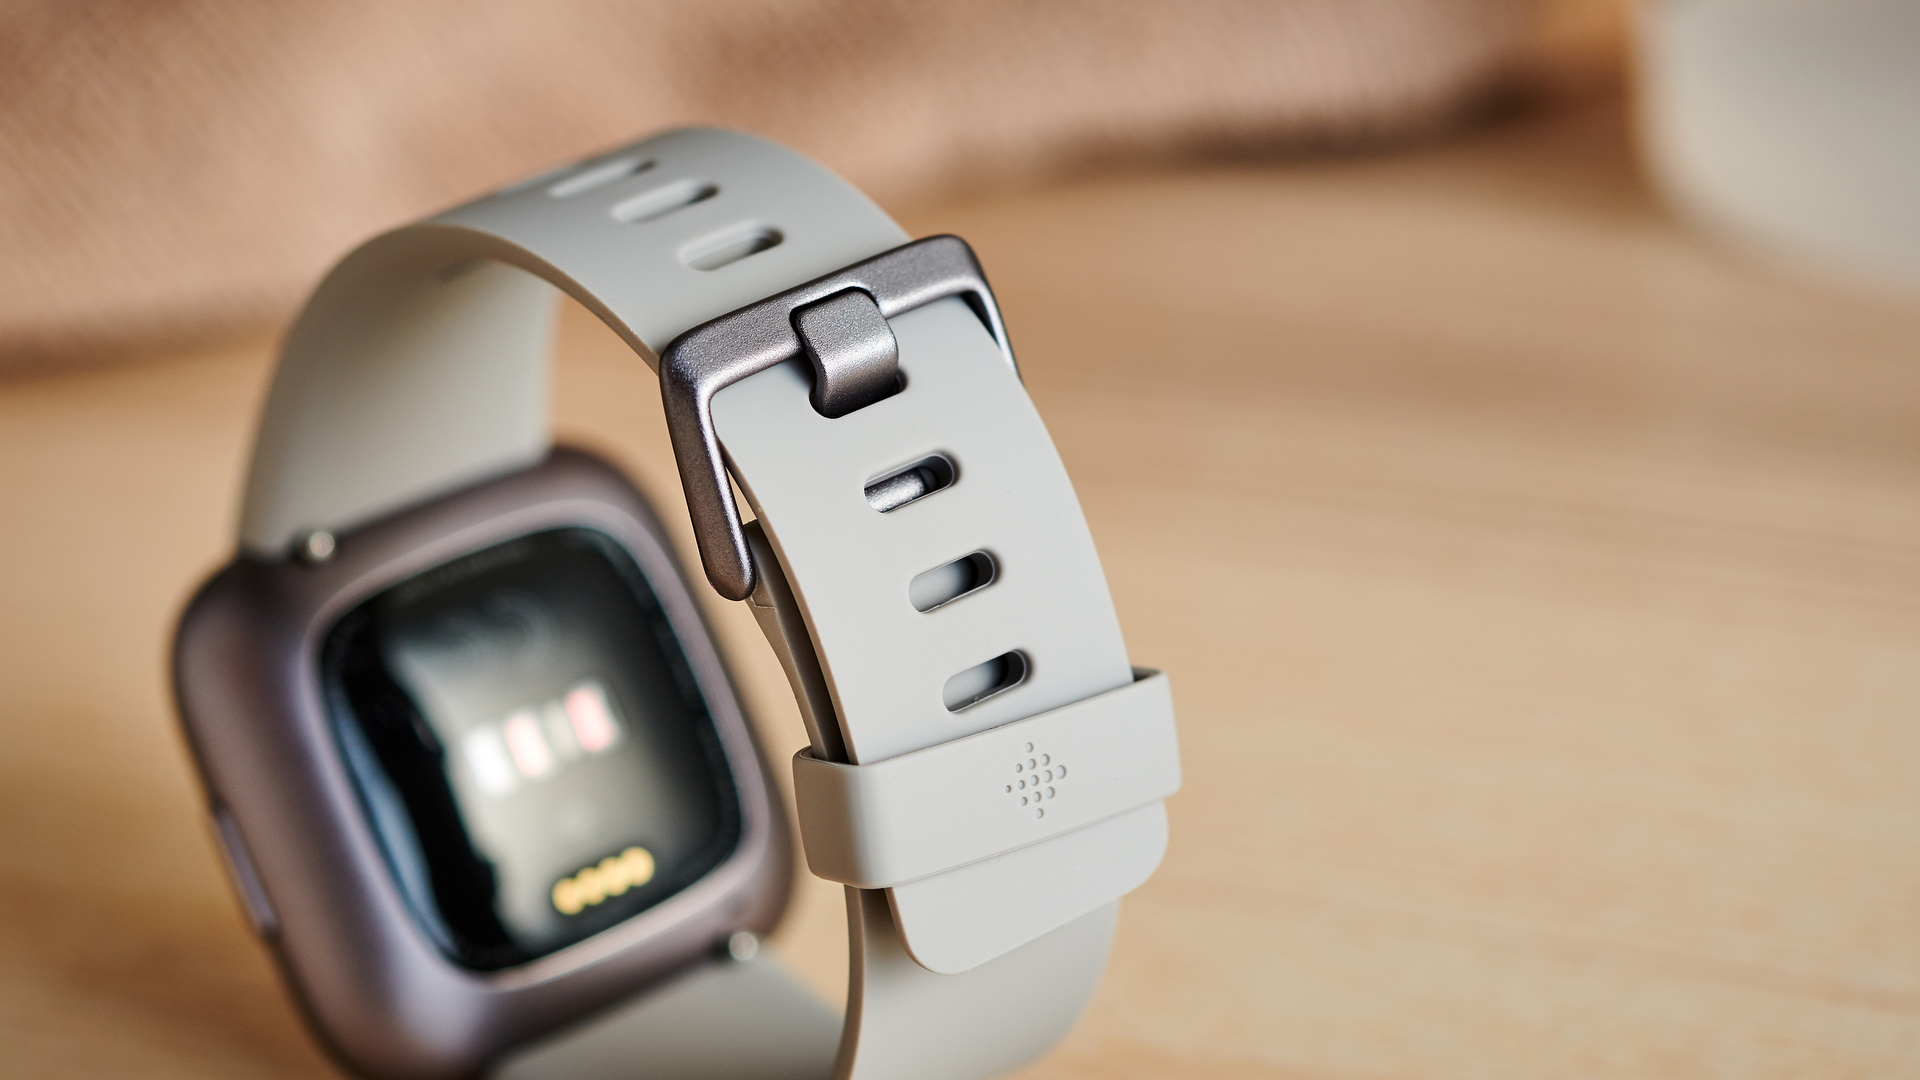 The new Versa 2 has the looks to rival any premium smartwatch